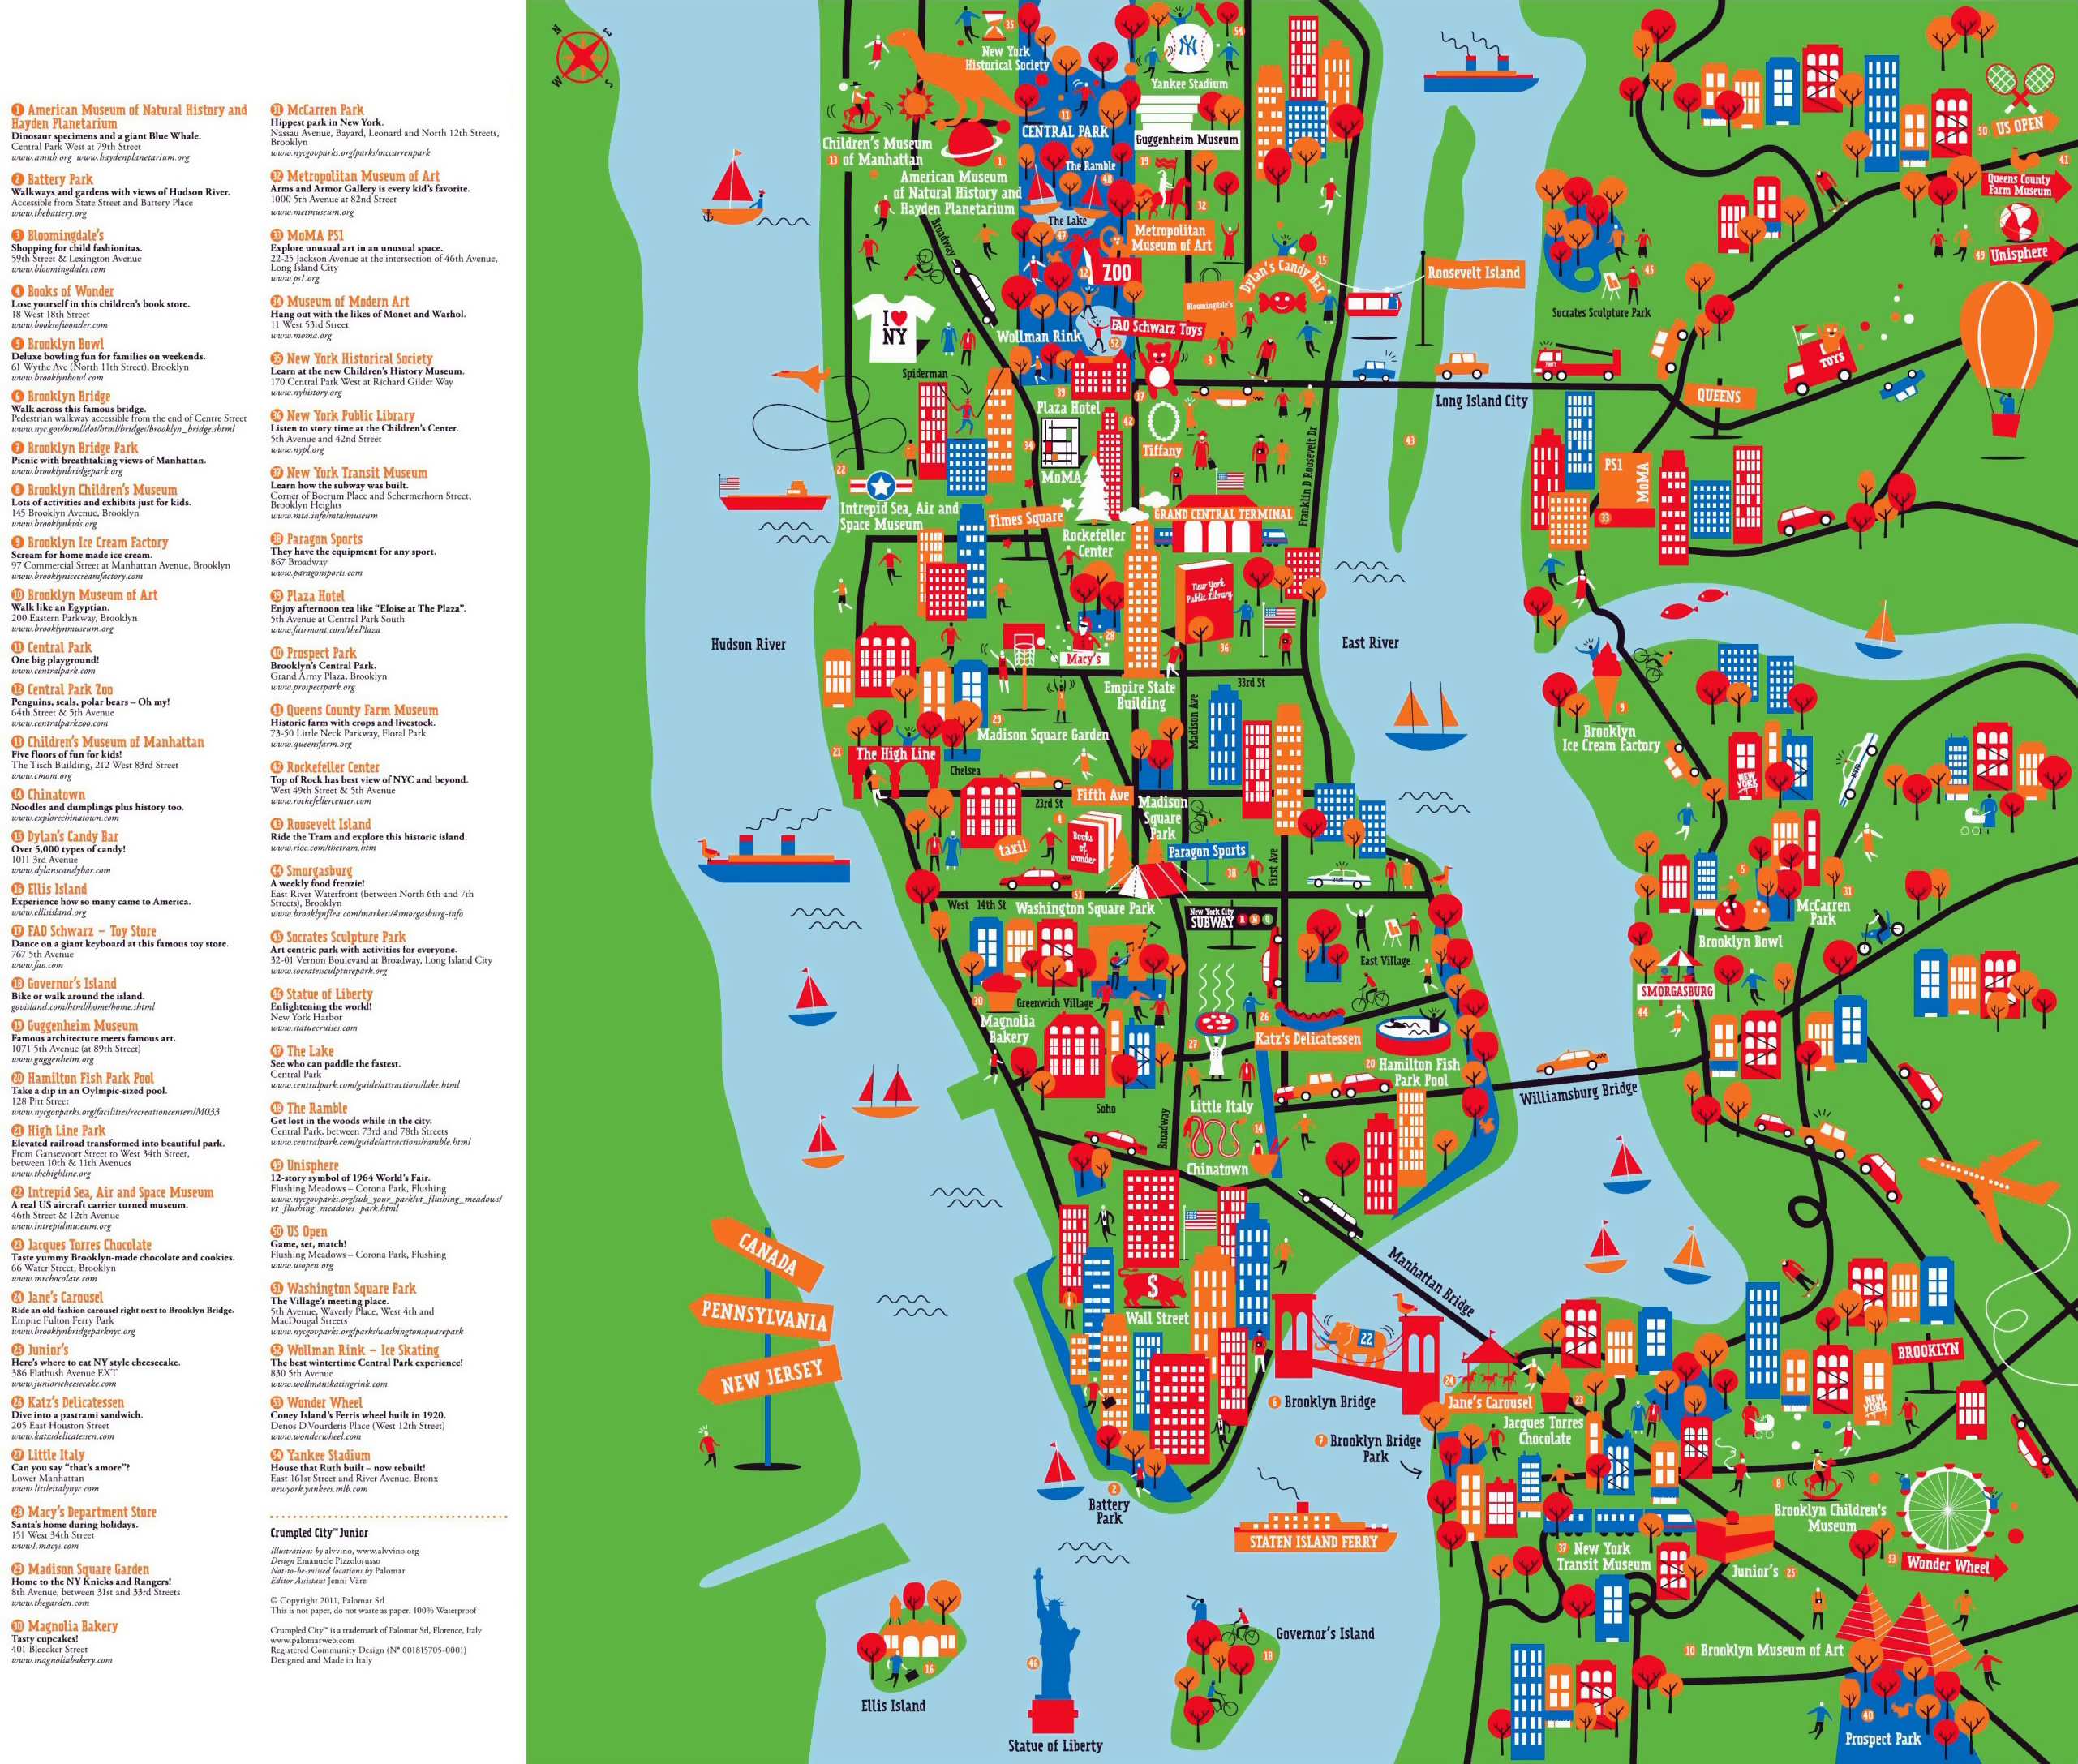 New York Attractions Map Large detailed New York tourist attractions map | New York | USA